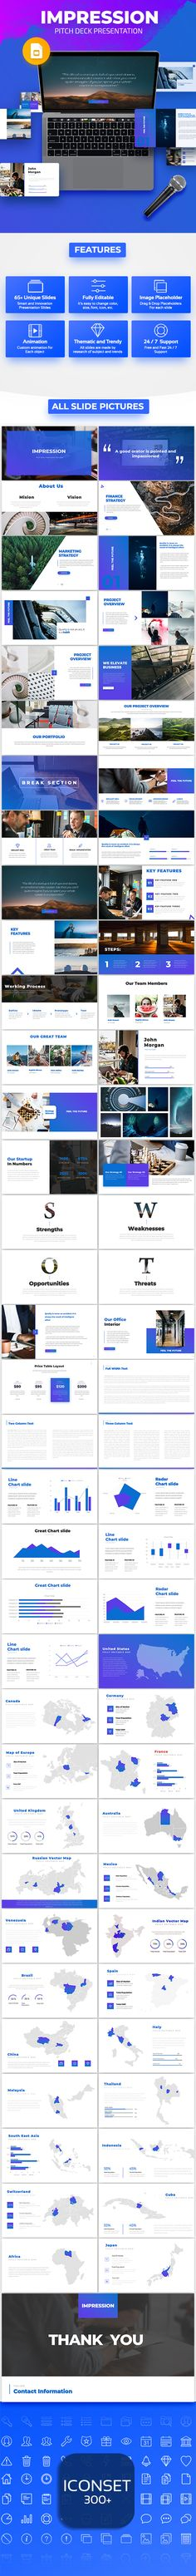 855 Best Powerpoint Template Images On Pinterest In 2018 Keynote